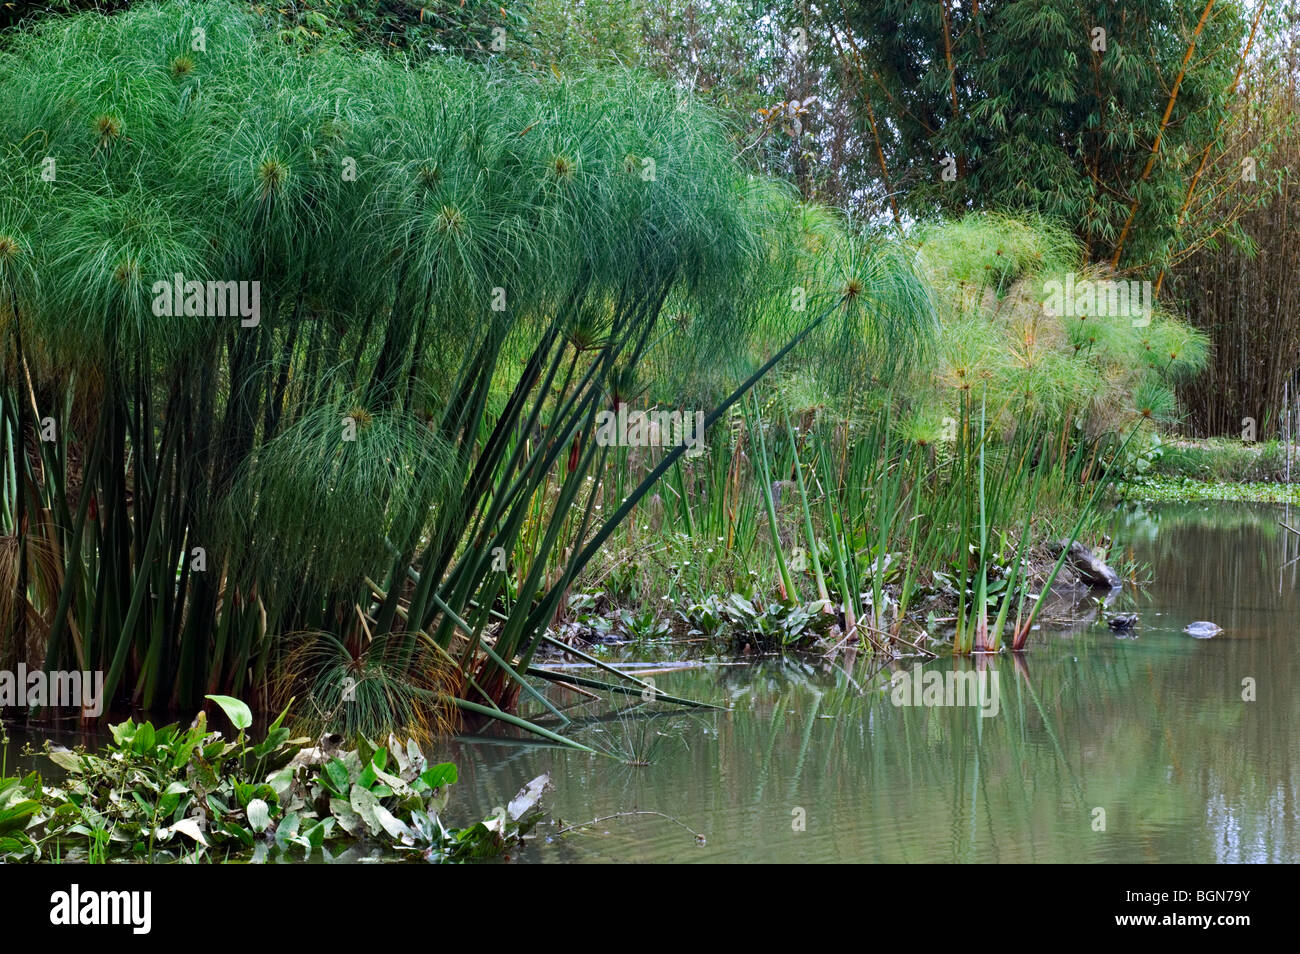 papyrus sedge paper reed indian matting plant nile grass stock photo 27511623 alamy. Black Bedroom Furniture Sets. Home Design Ideas